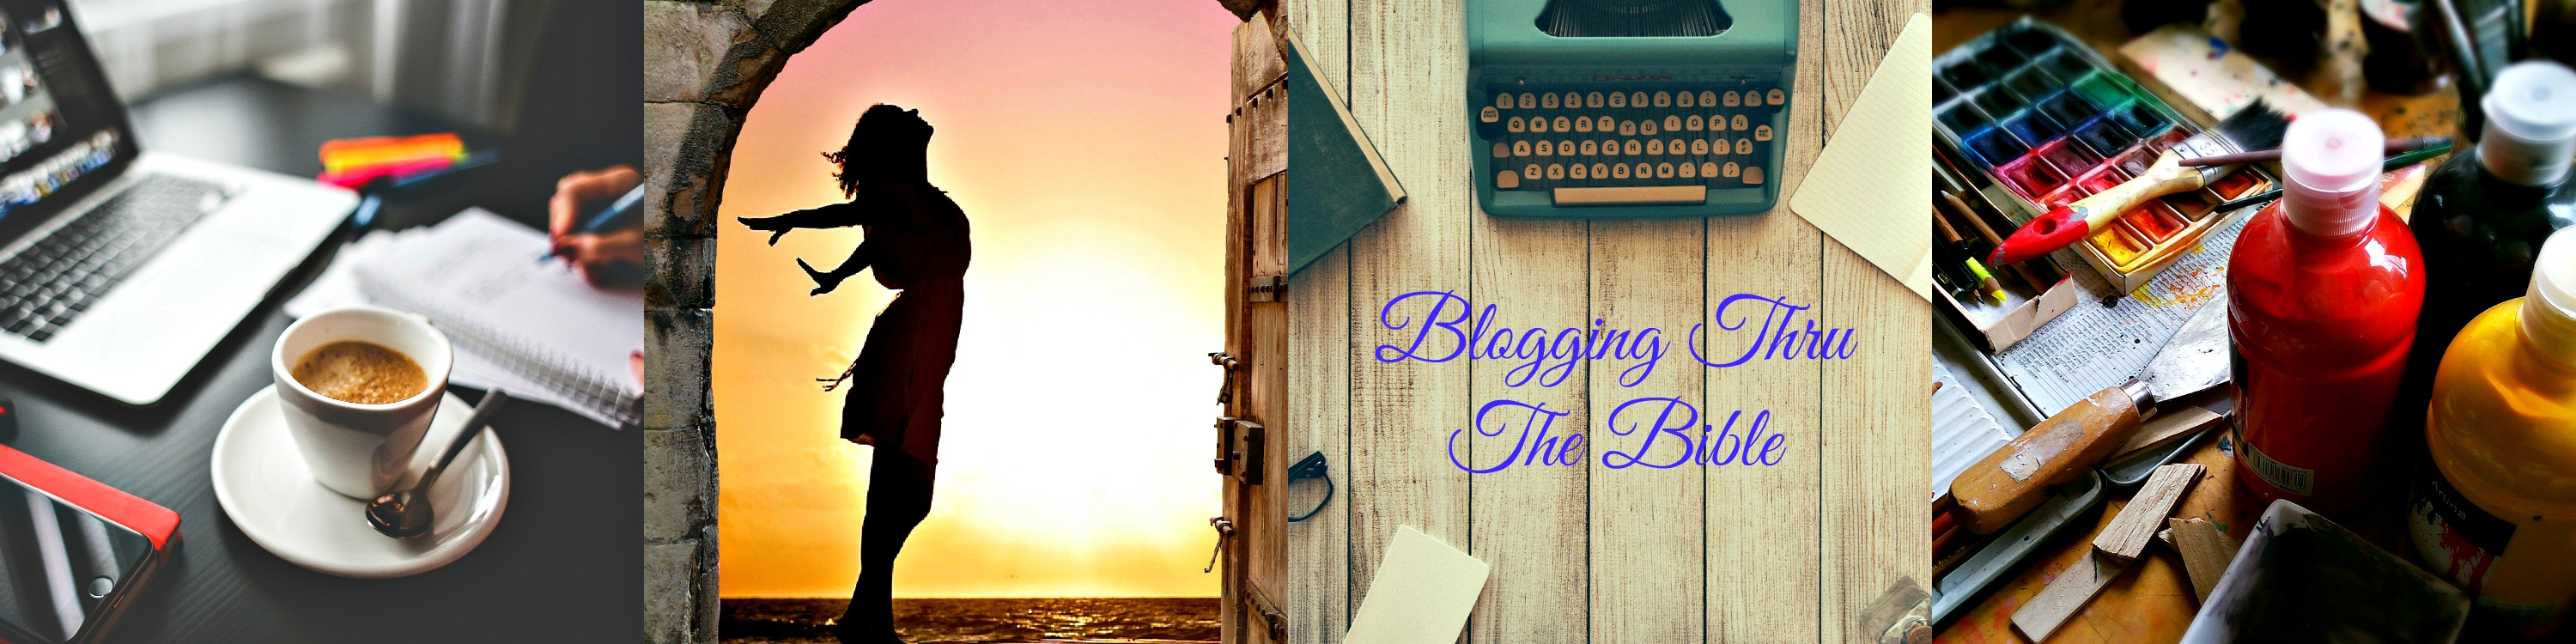 BLOGGING THRU THE BIBLE:  Good Morning Girls Resources for the Book of Romans